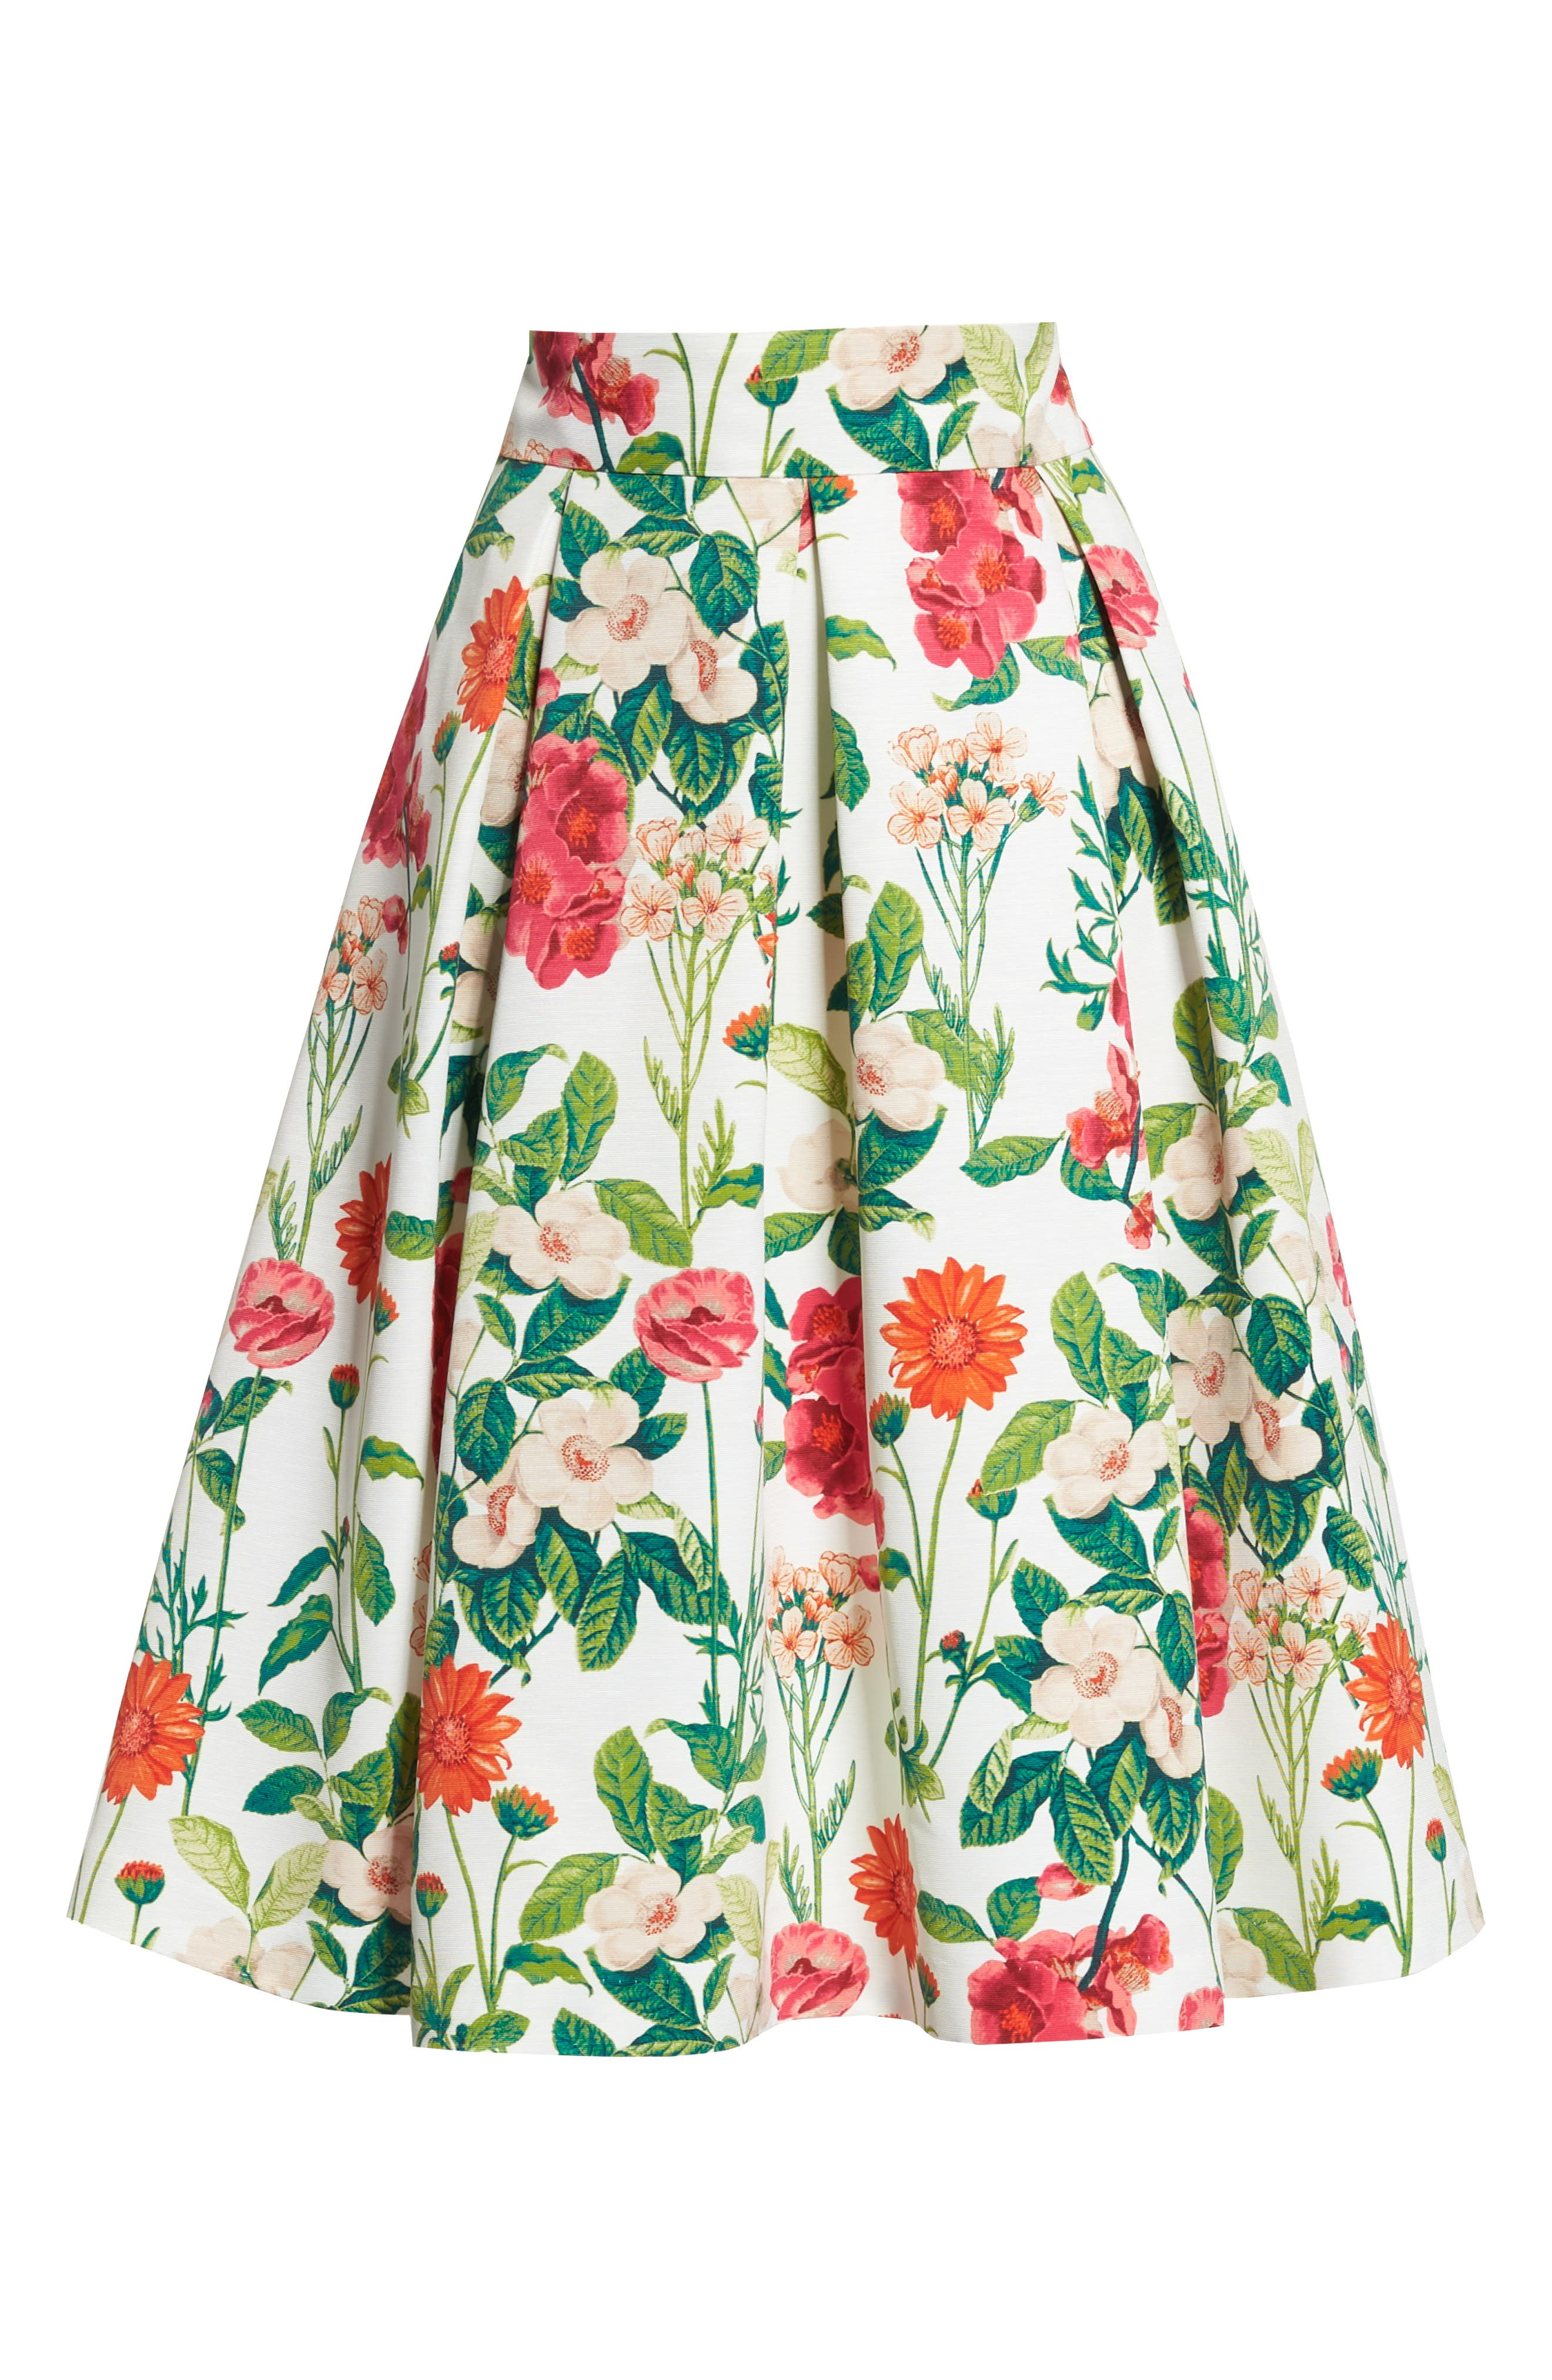 Floral A-Line Skirt,                             Alternate thumbnail 7, color,                             Ivory Multi